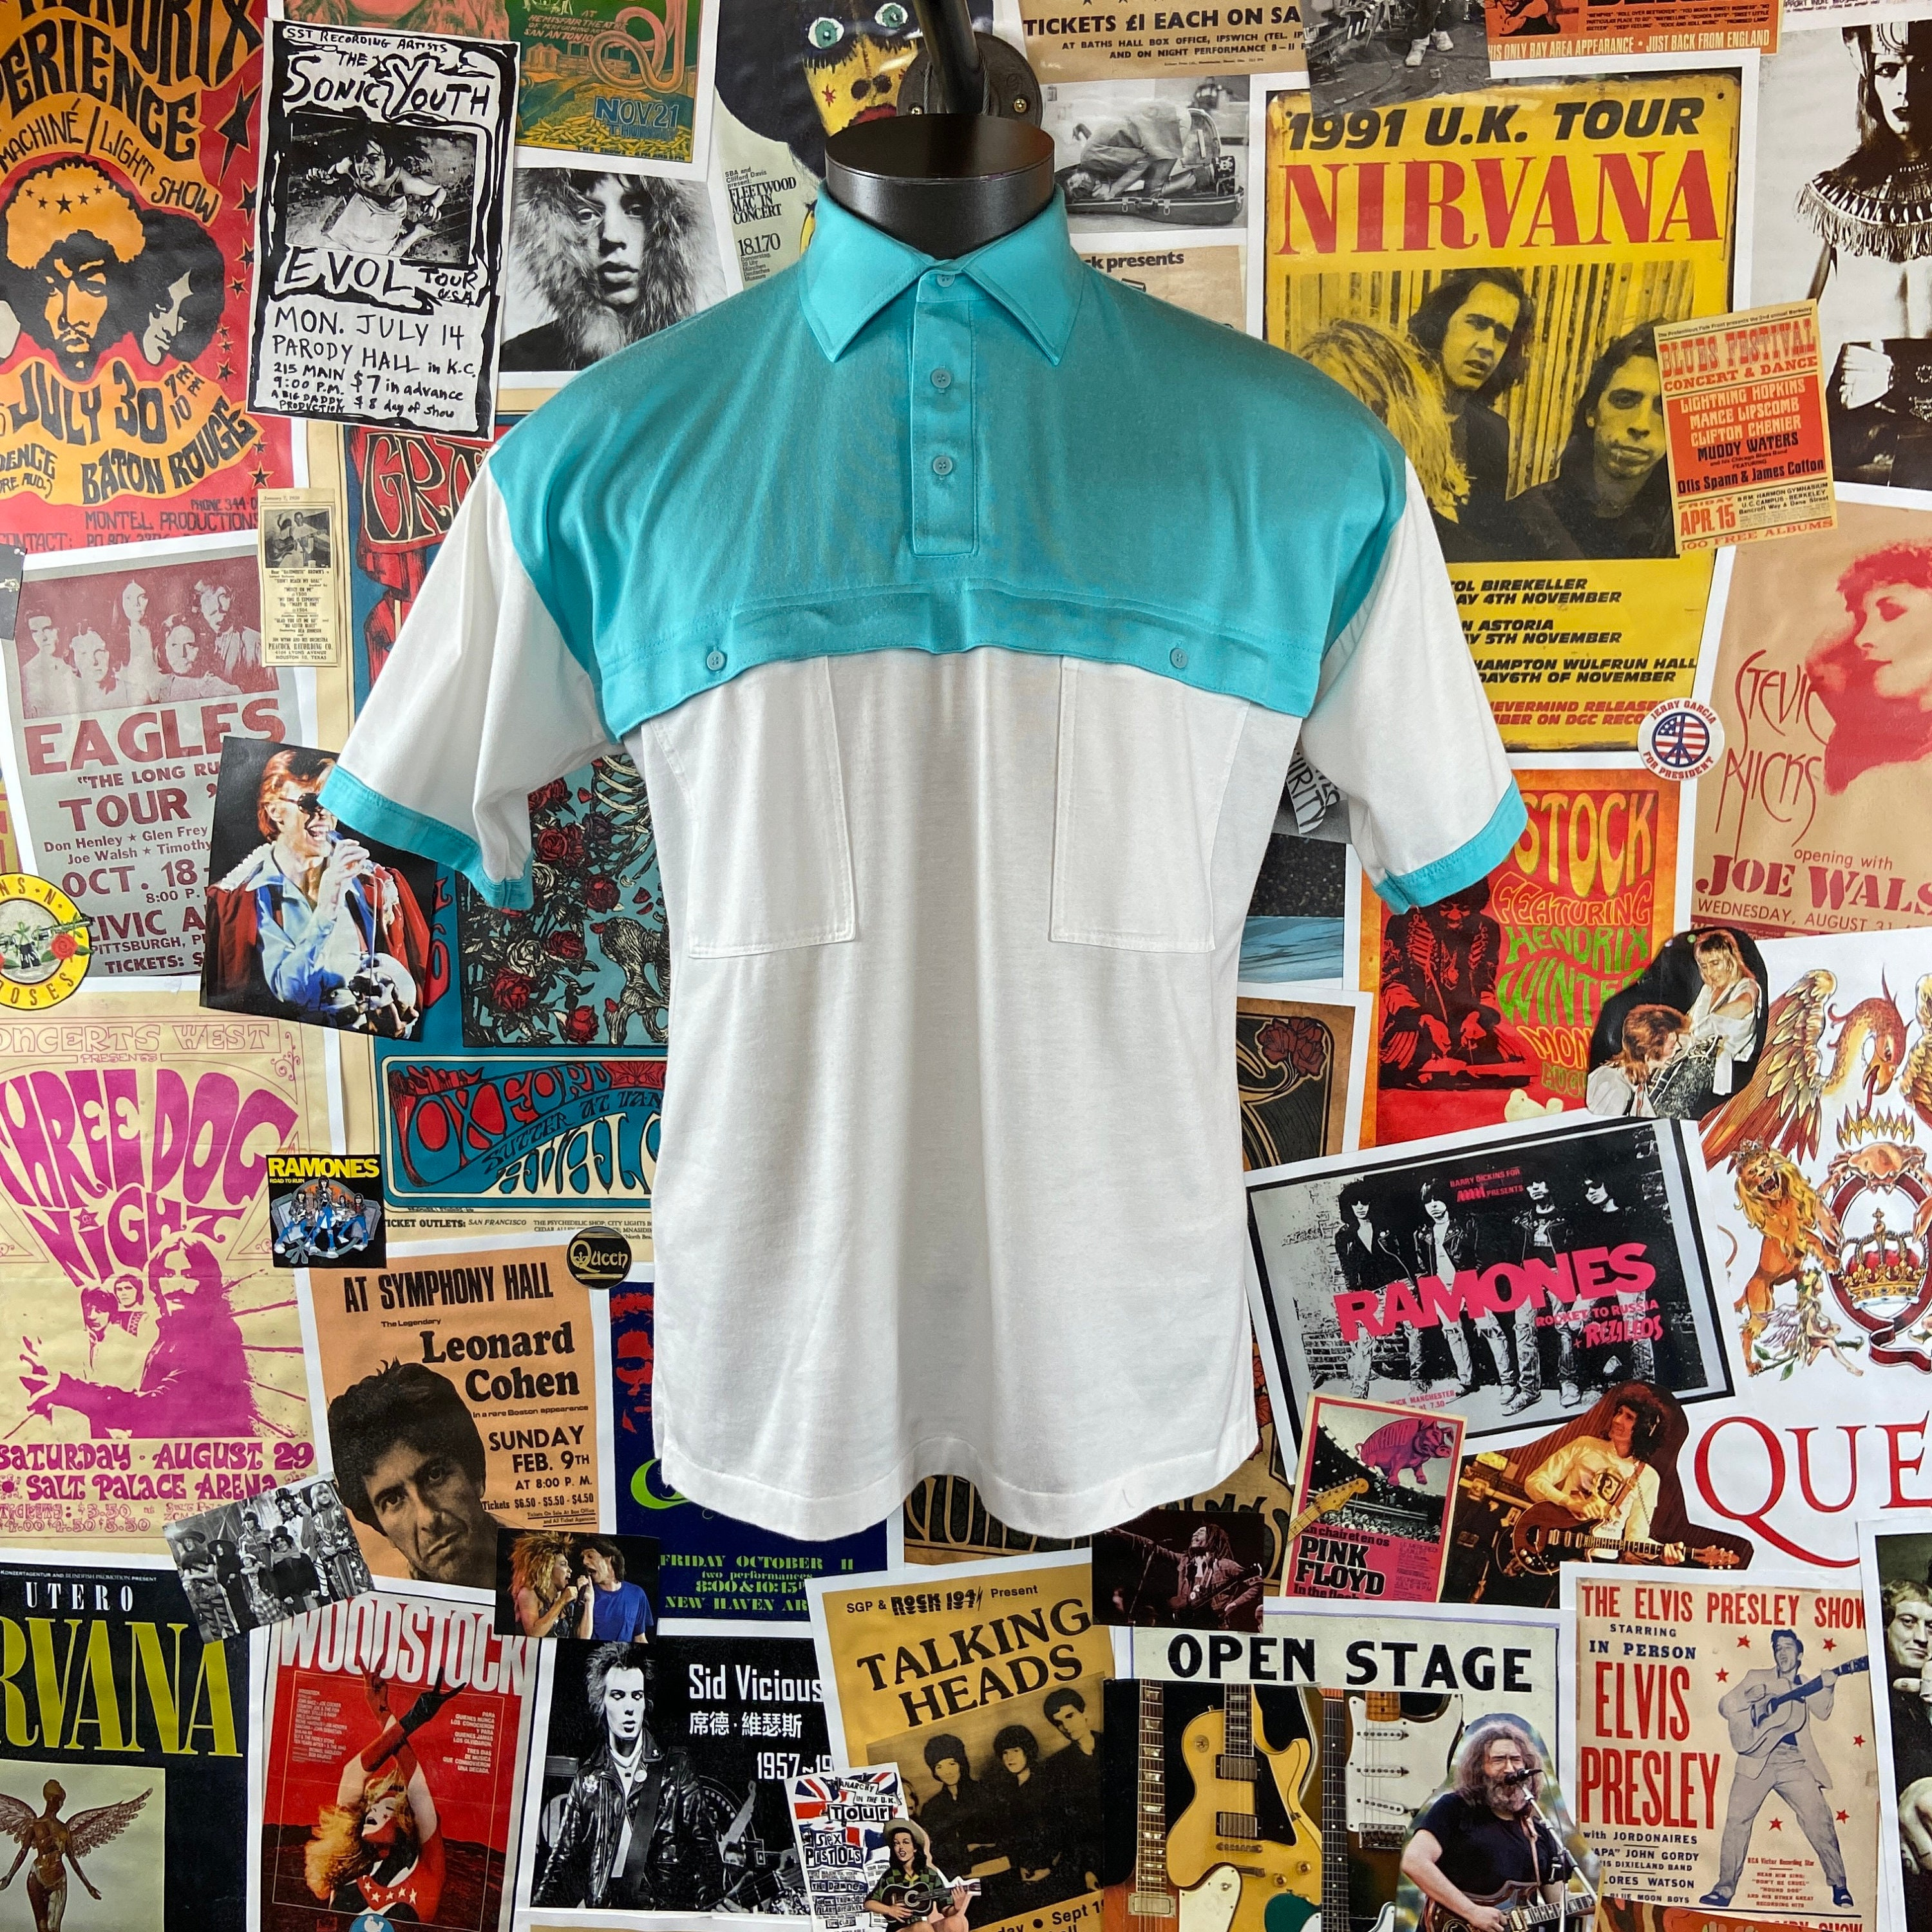 1970s Men's Shirt Styles – Vintage 70s Shirts for Guys Vintage Mens 1970S-80S Teal  White Two Tone Color Block Countess Mara Short Sleeve Polo Shirt $38.00 AT vintagedancer.com